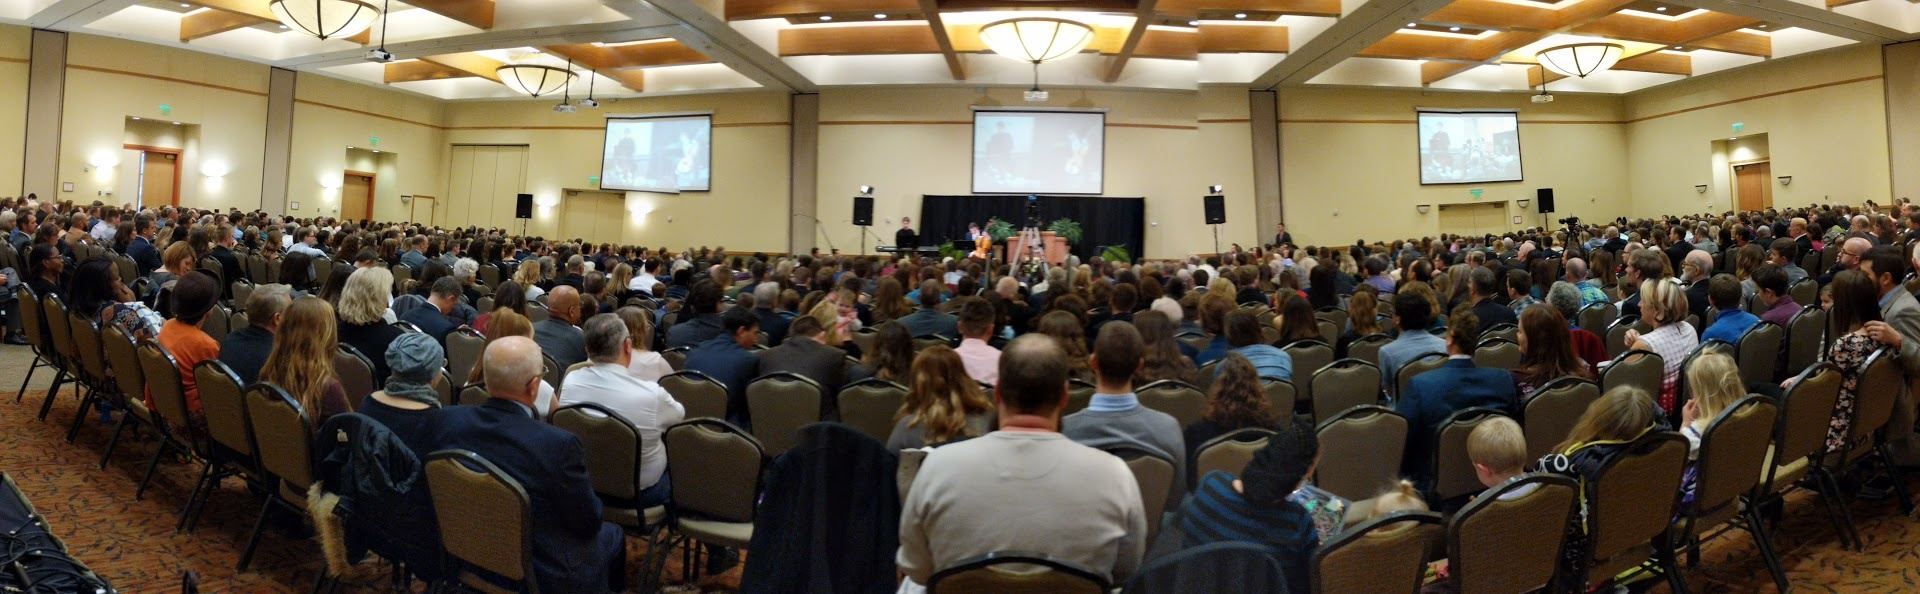 Church service at last year's Winter Family Weekend.